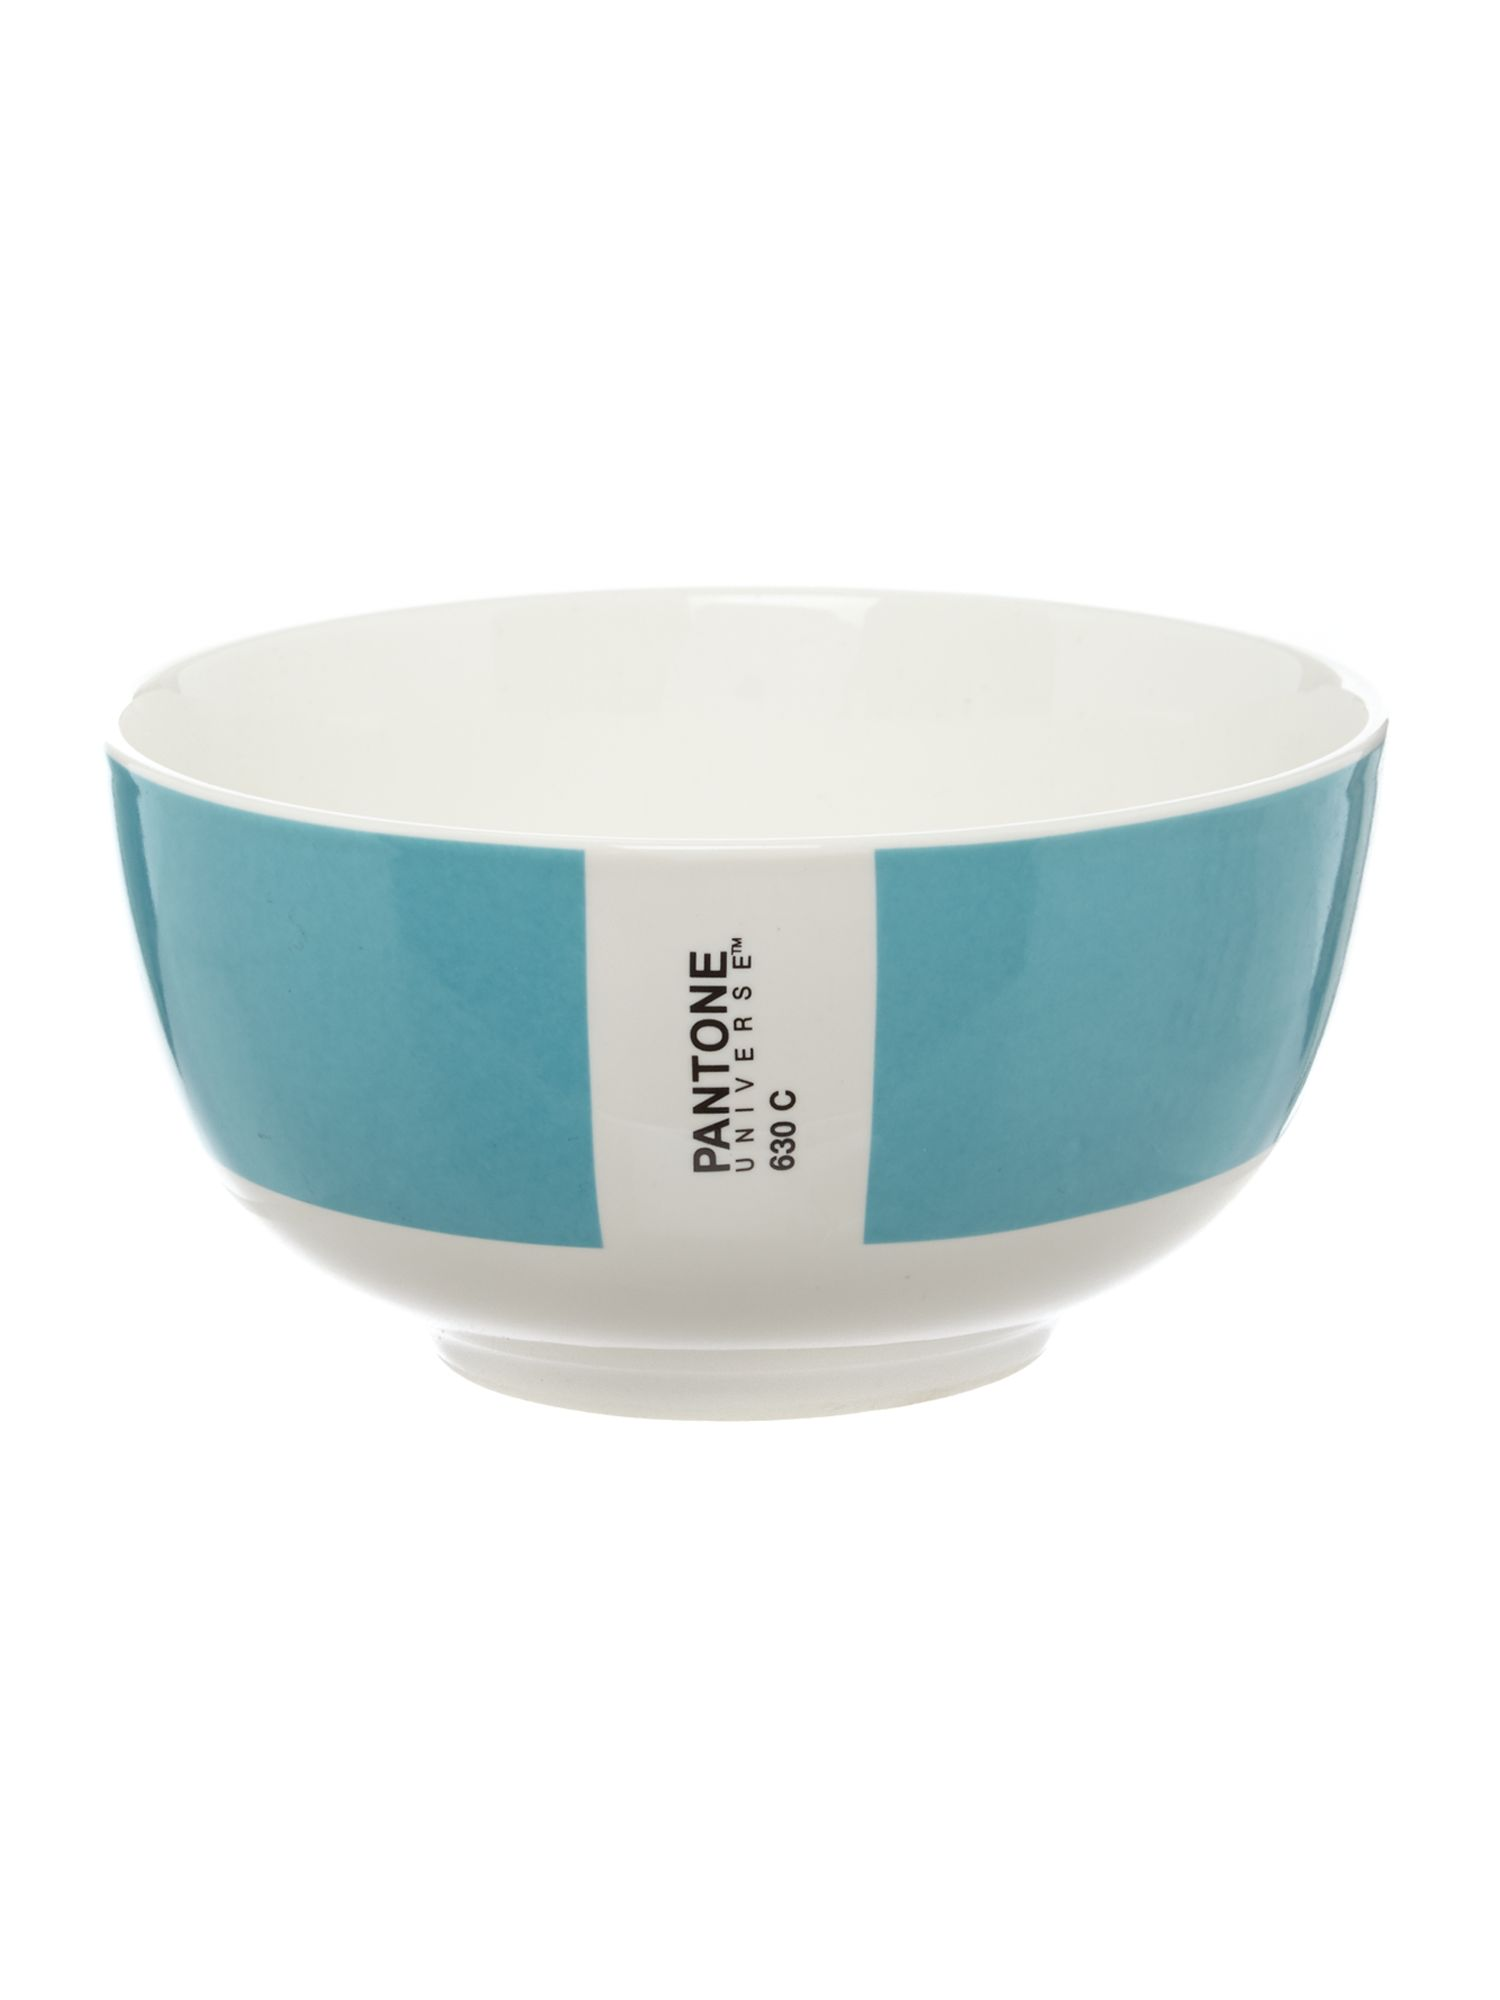 Image of Pantone Bowl luca trazzi blue